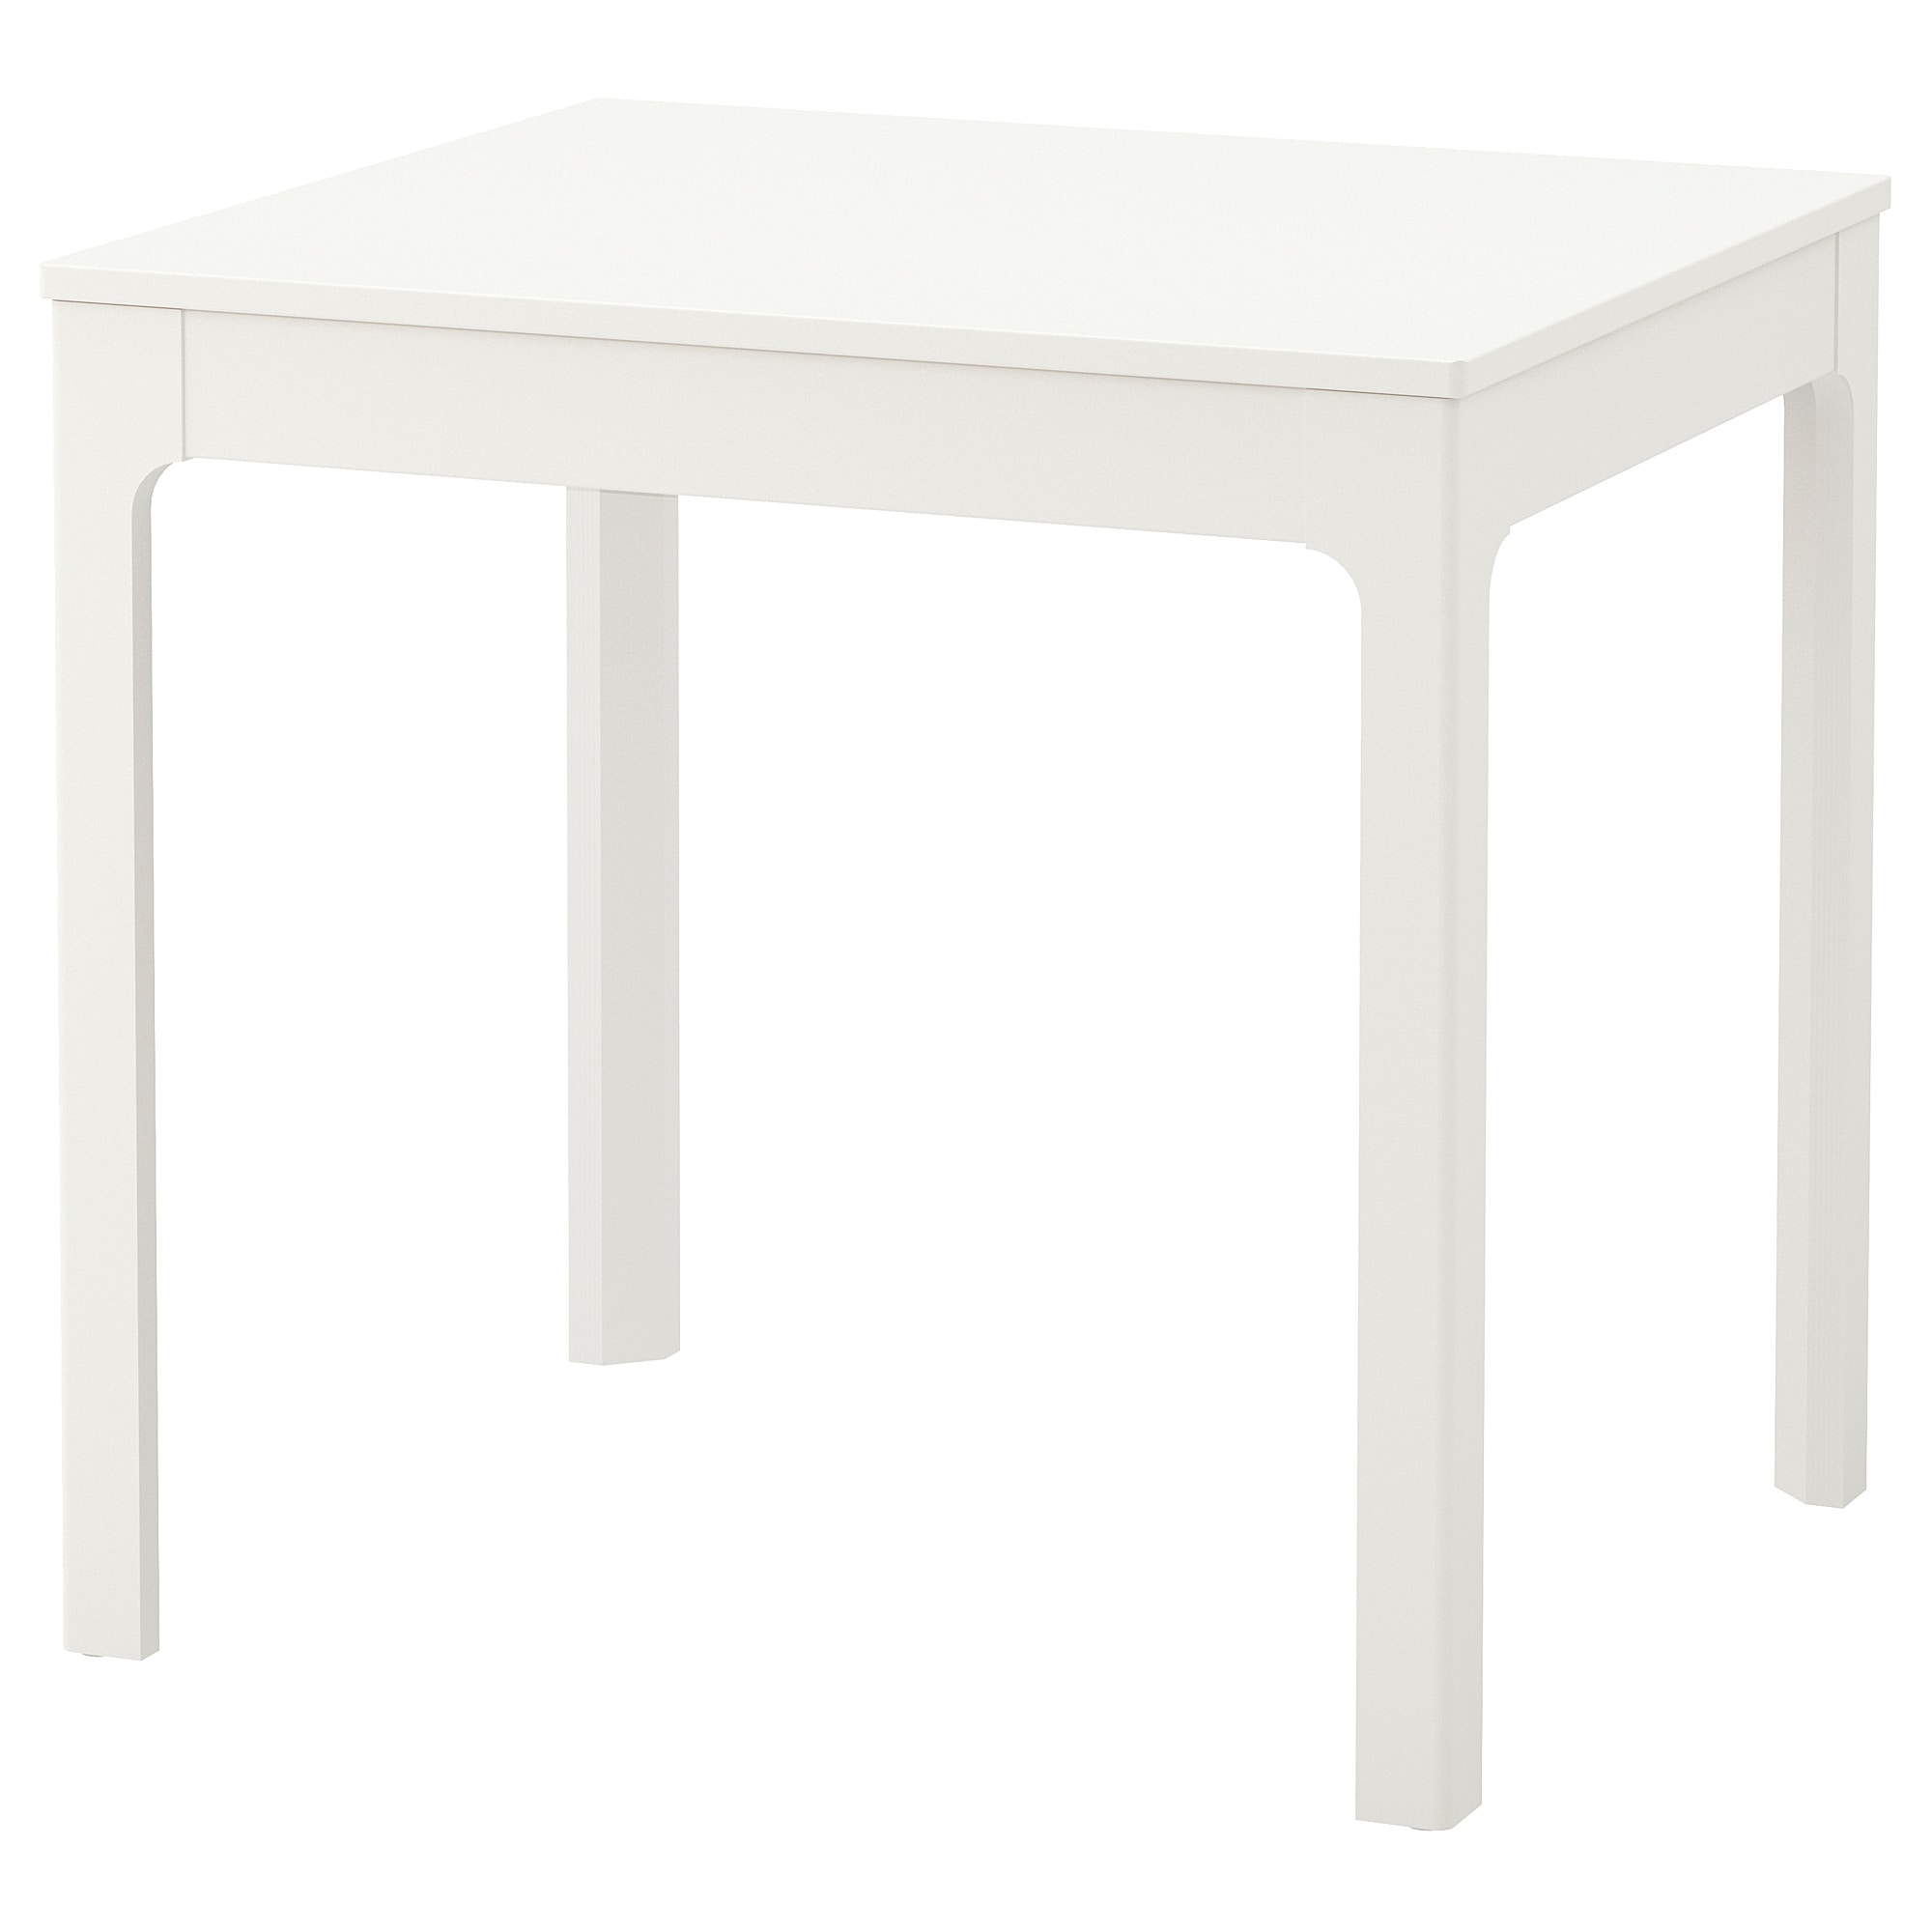 EKEDALEN Extendable Table, White